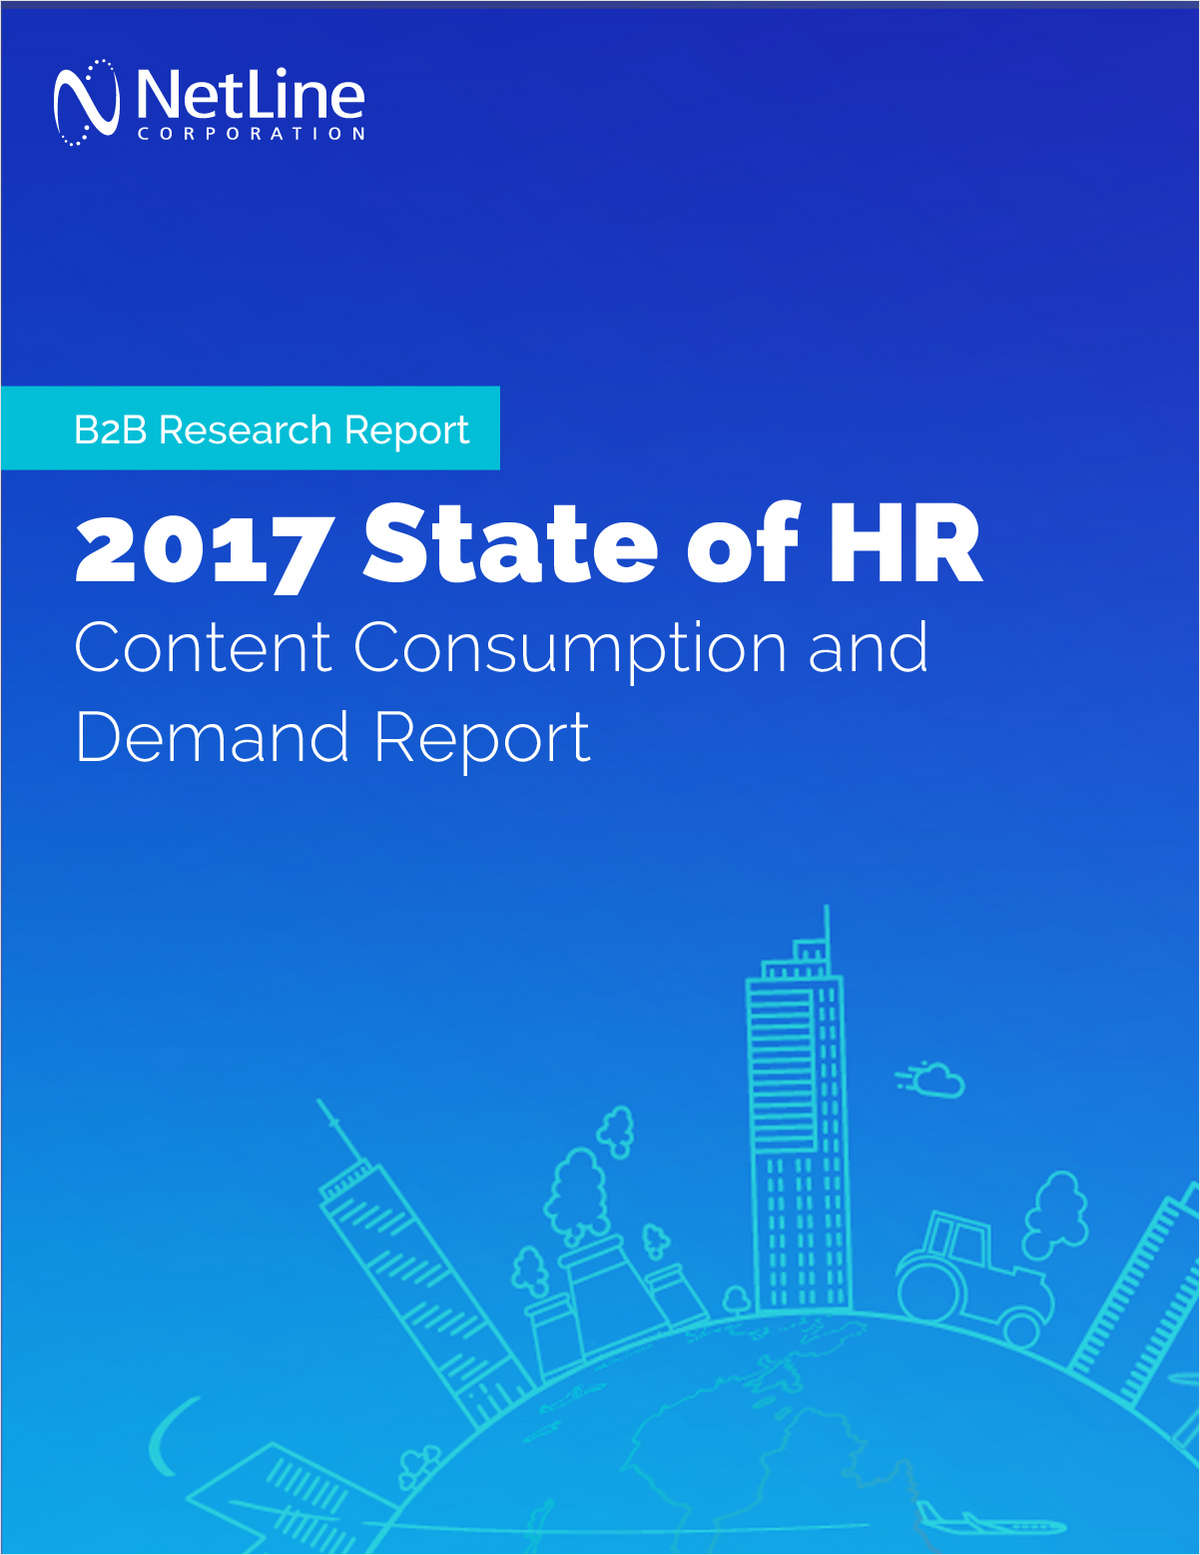 2017 State of HR Content Consumption and Demand Report for HR Marketers